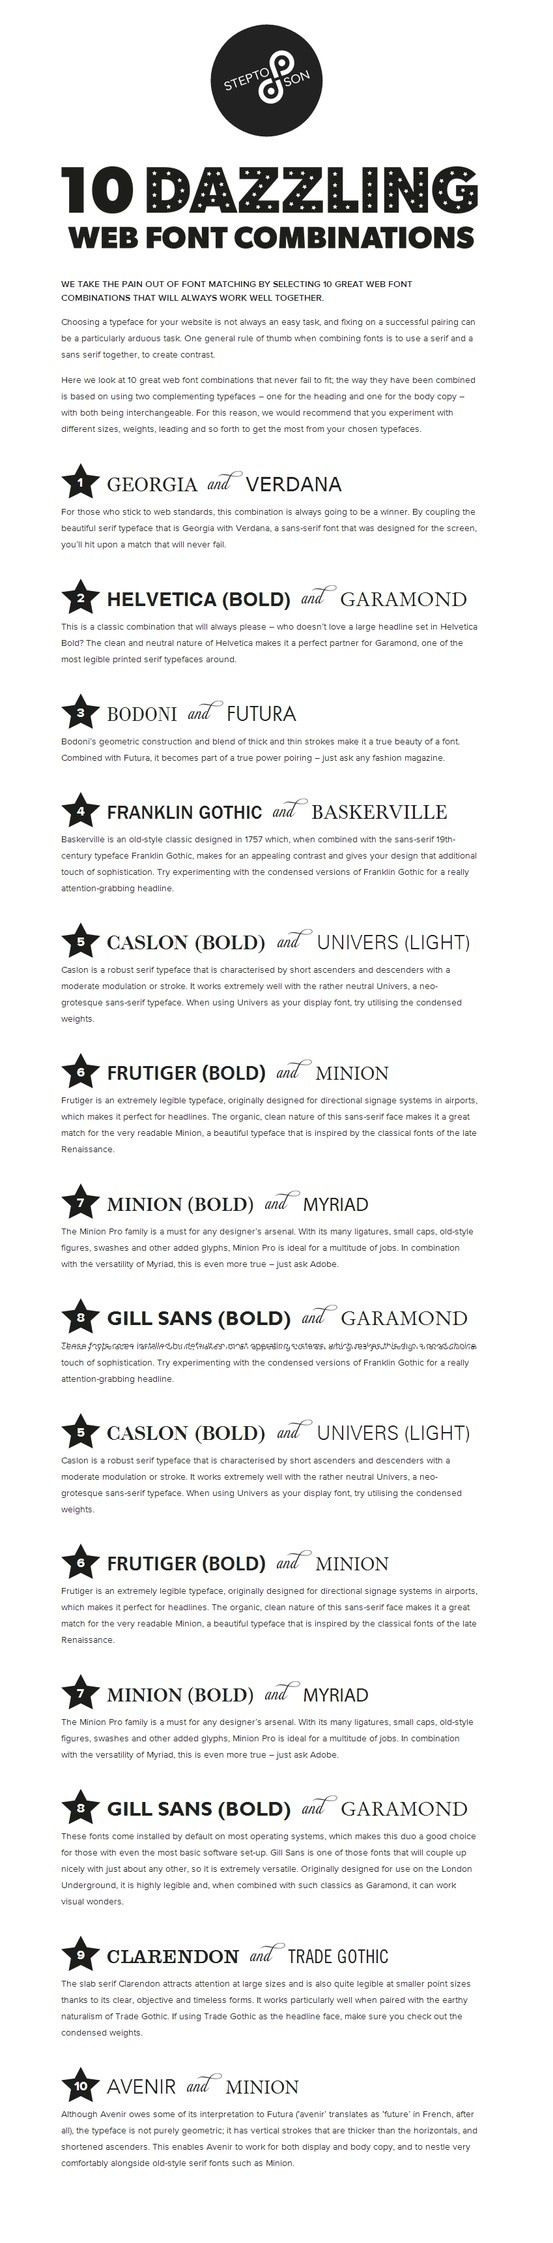 I often use Helvetica with Adobe Garamond Pro for my tech online user guides. It looks great.